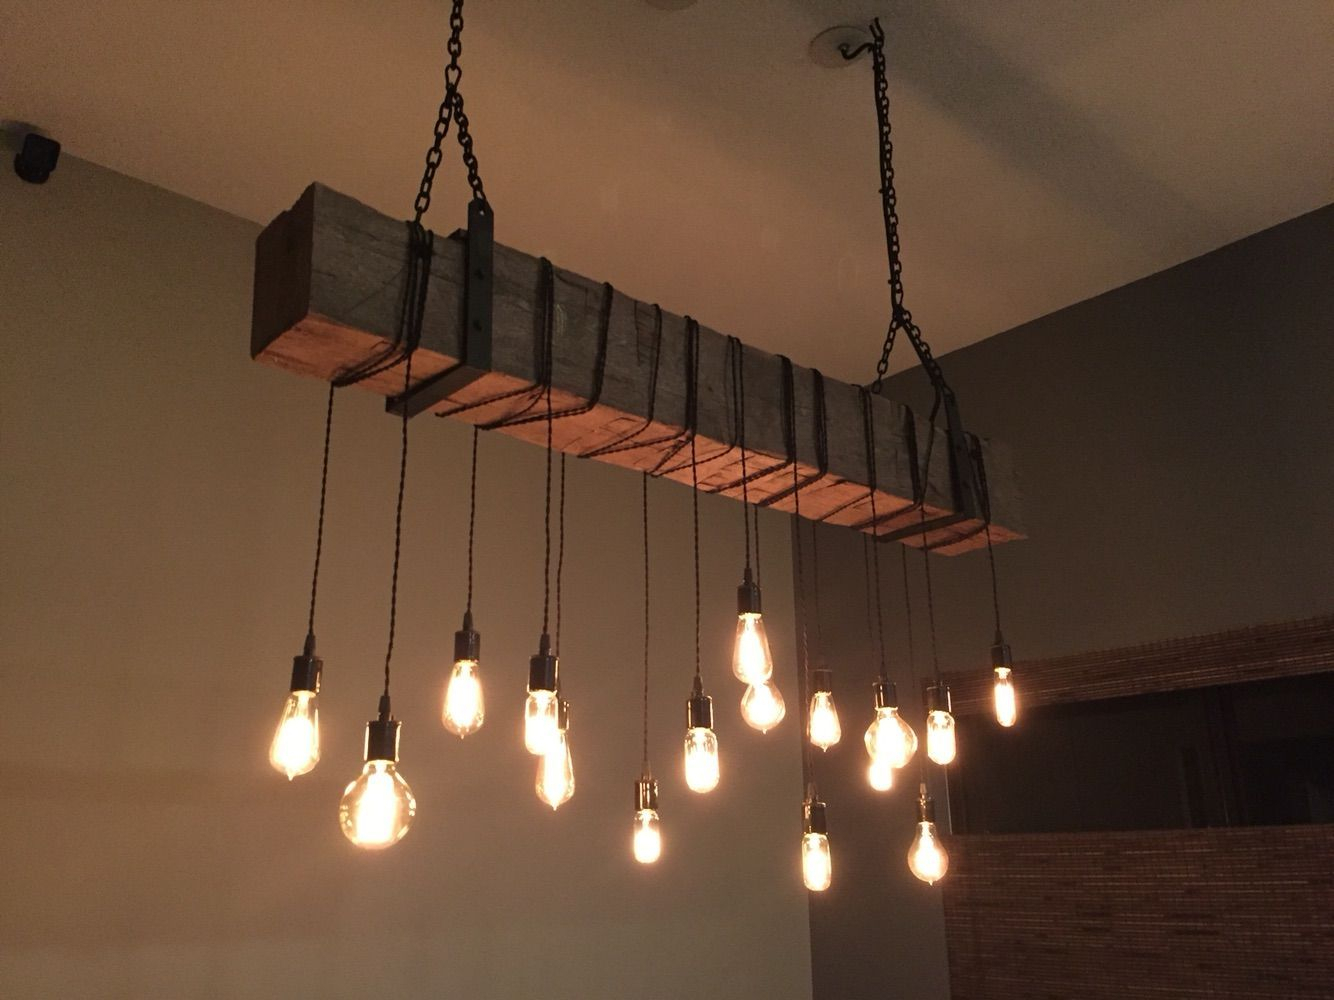 Rustic Light Fixtures Chandelier | Home Design Ideas Inside Shayla 12 Light Wagon Wheel Chandeliers (Photo 28 of 30)